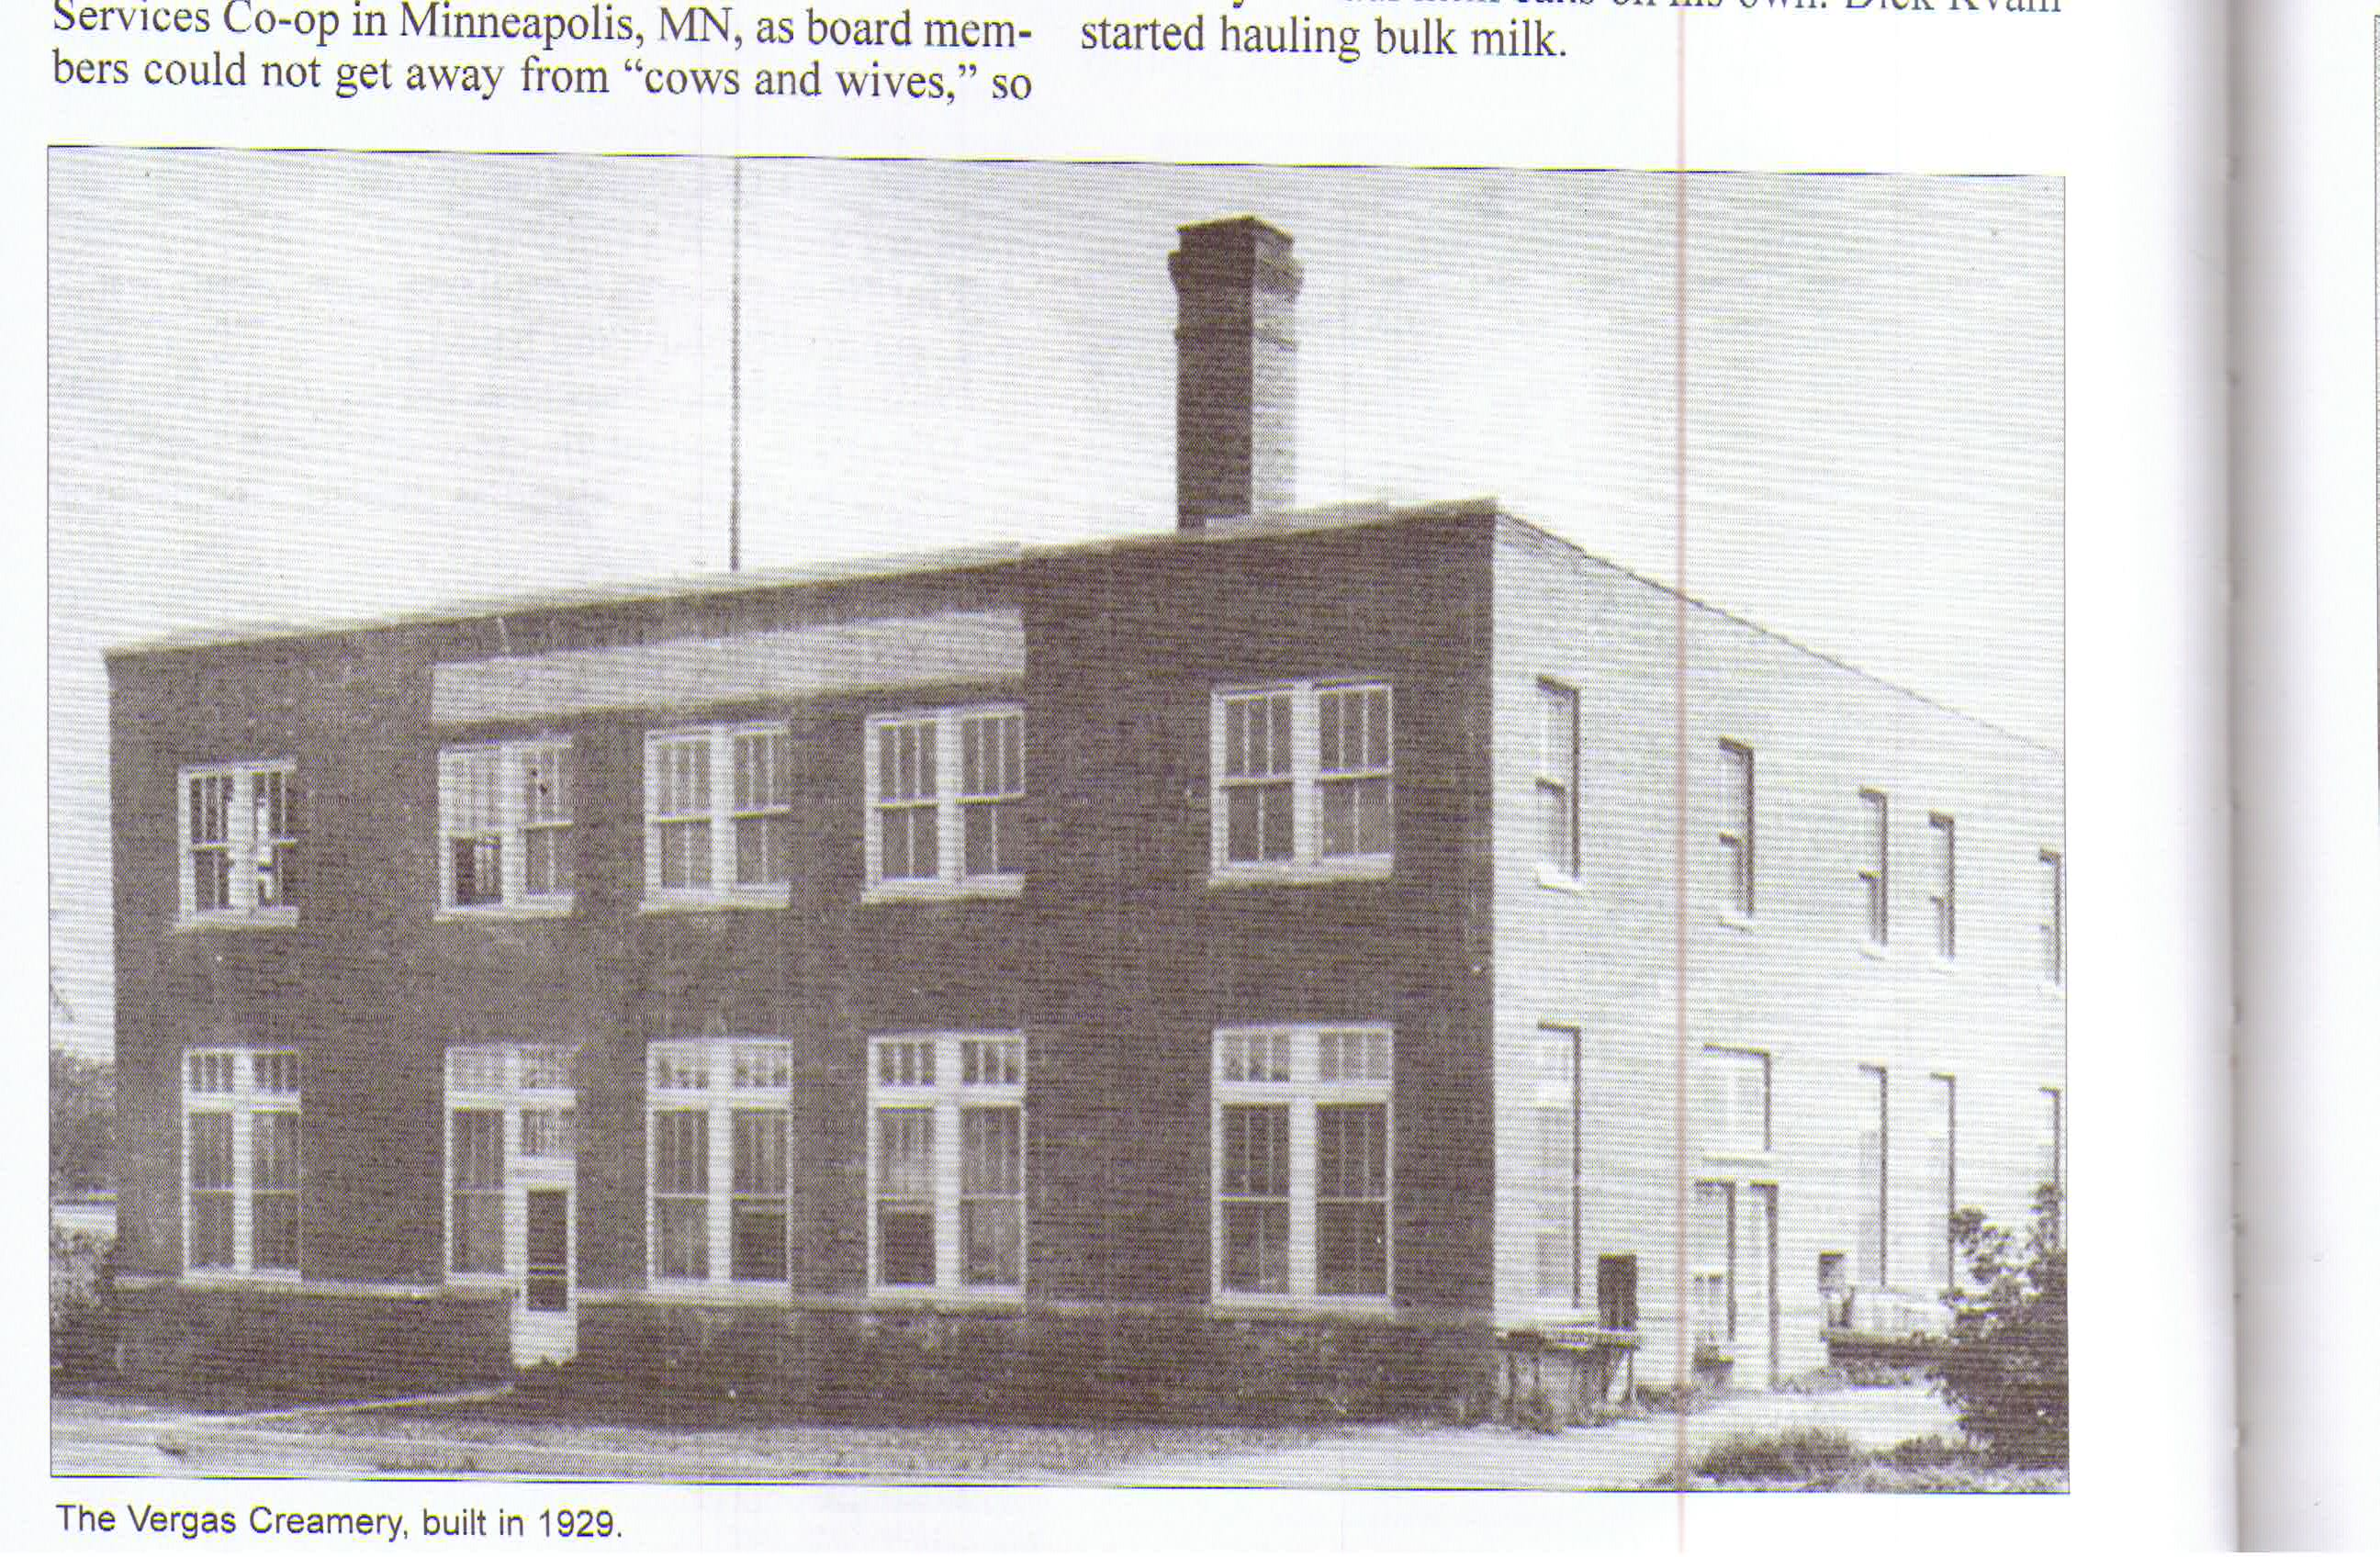 Historic photo of the Vergas Creamery building, now the Vergas Municipal building